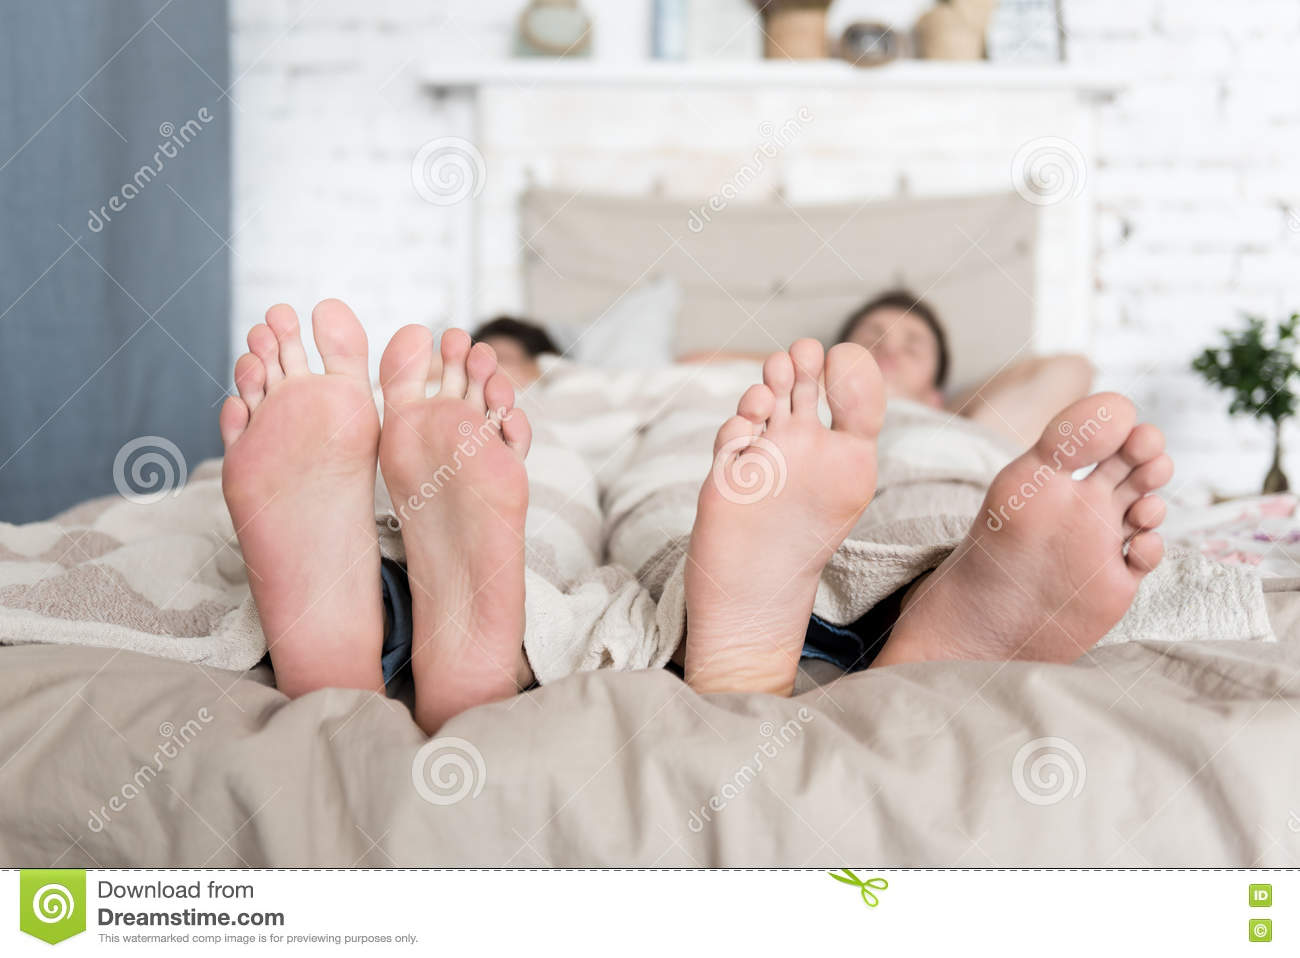 gay foot close